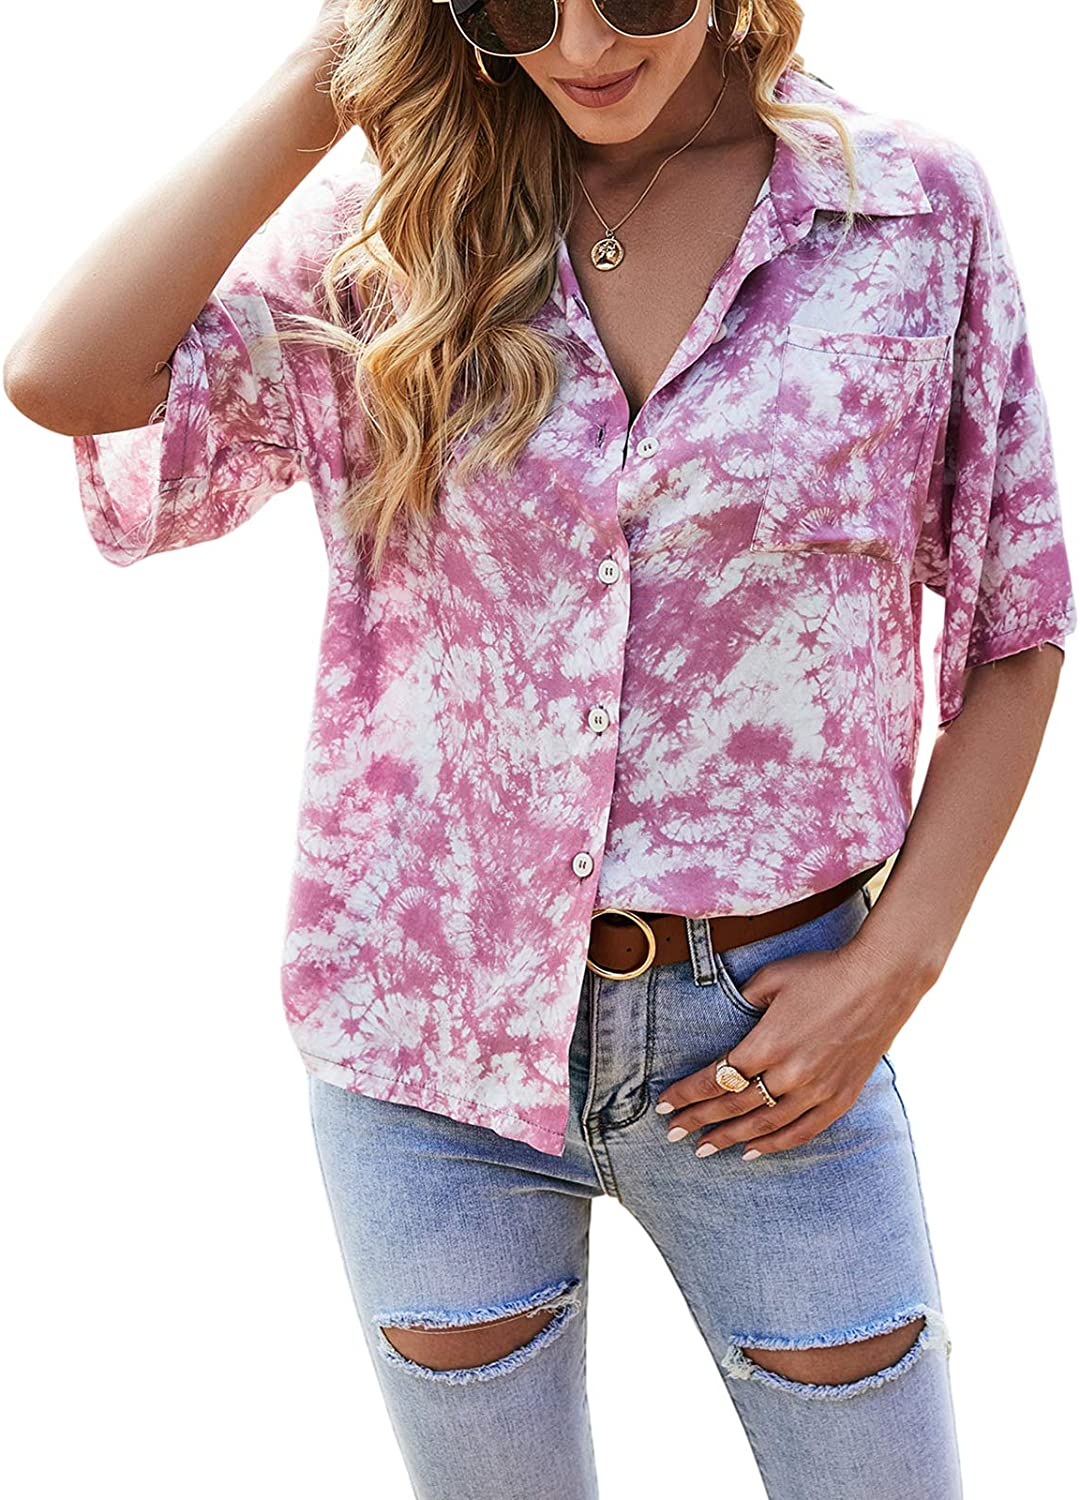 Women 's Short Sleeve Tie-dye Blouse Summer Casual Fashion Lapel Button Down Loose Single-Breasted Shirt